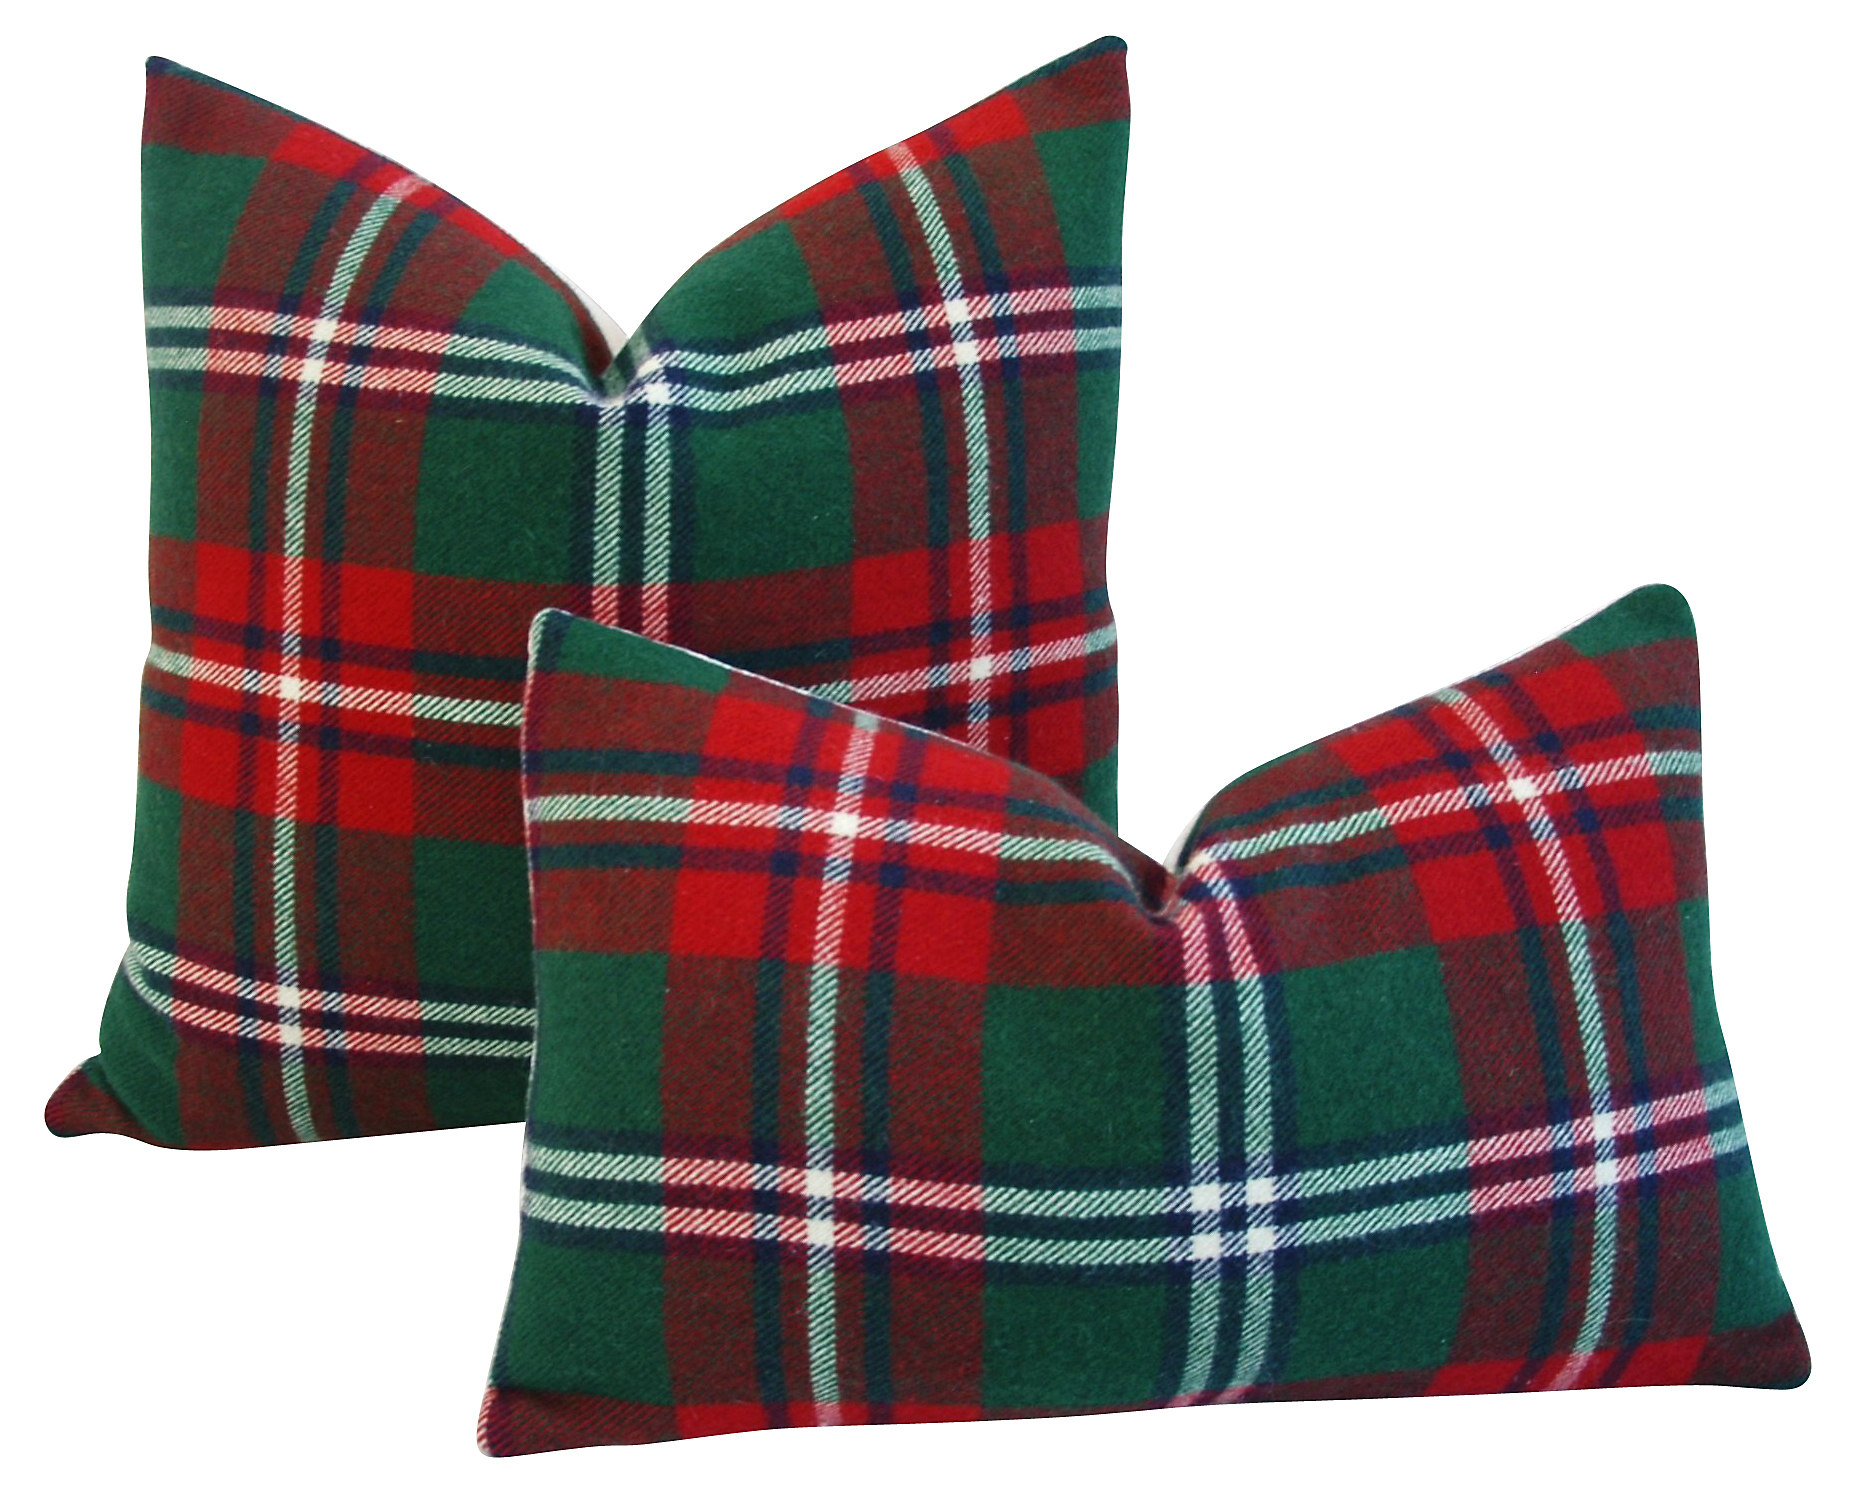 Scottish Tartan Pillows via Mike Seratt